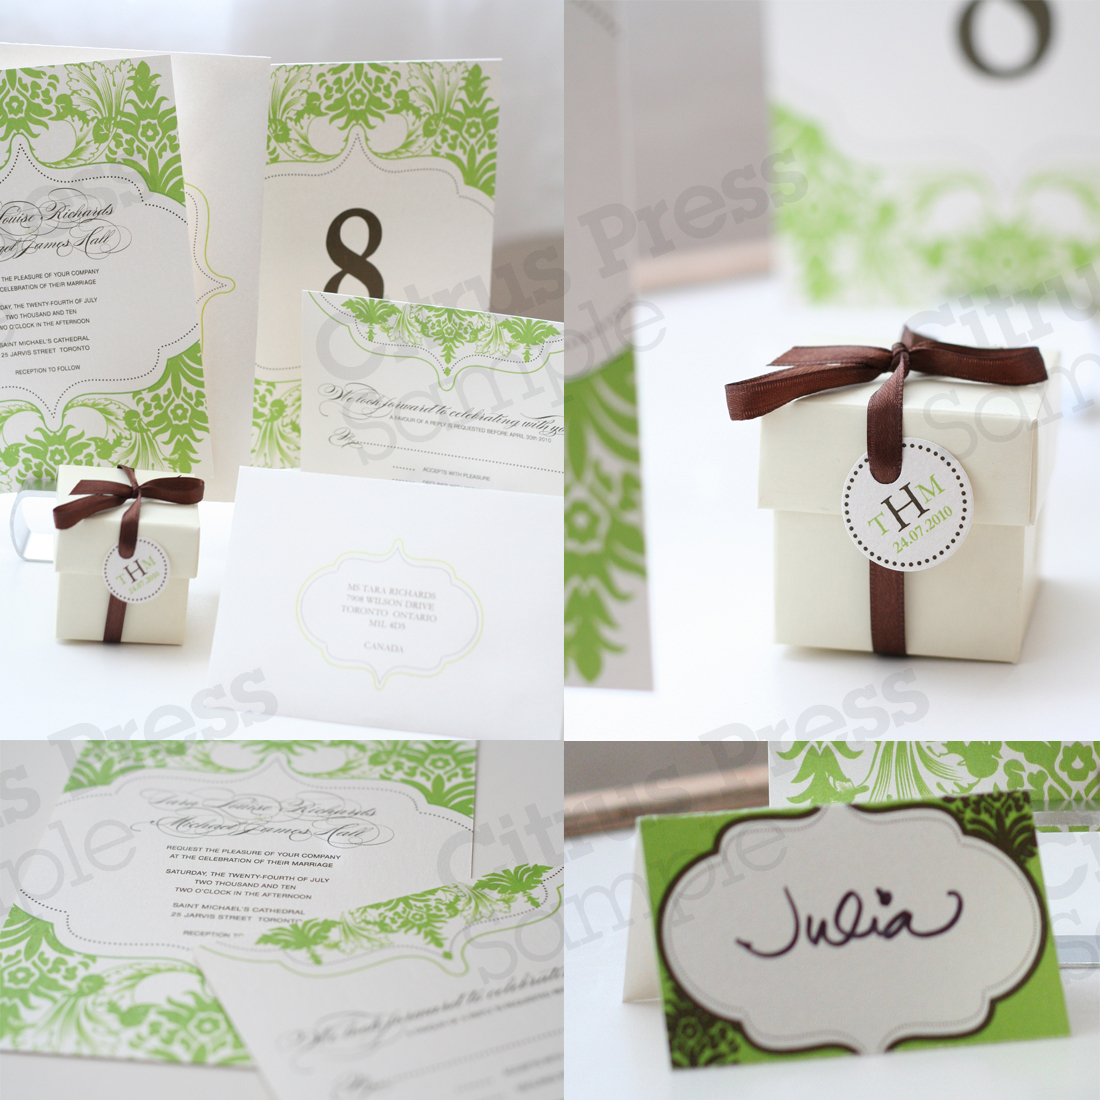 Stationery, white, yellow, green, brown, black, silver, Vintage, Classic, Invitations, Lovely, Damask, Filigree, Citrus press co